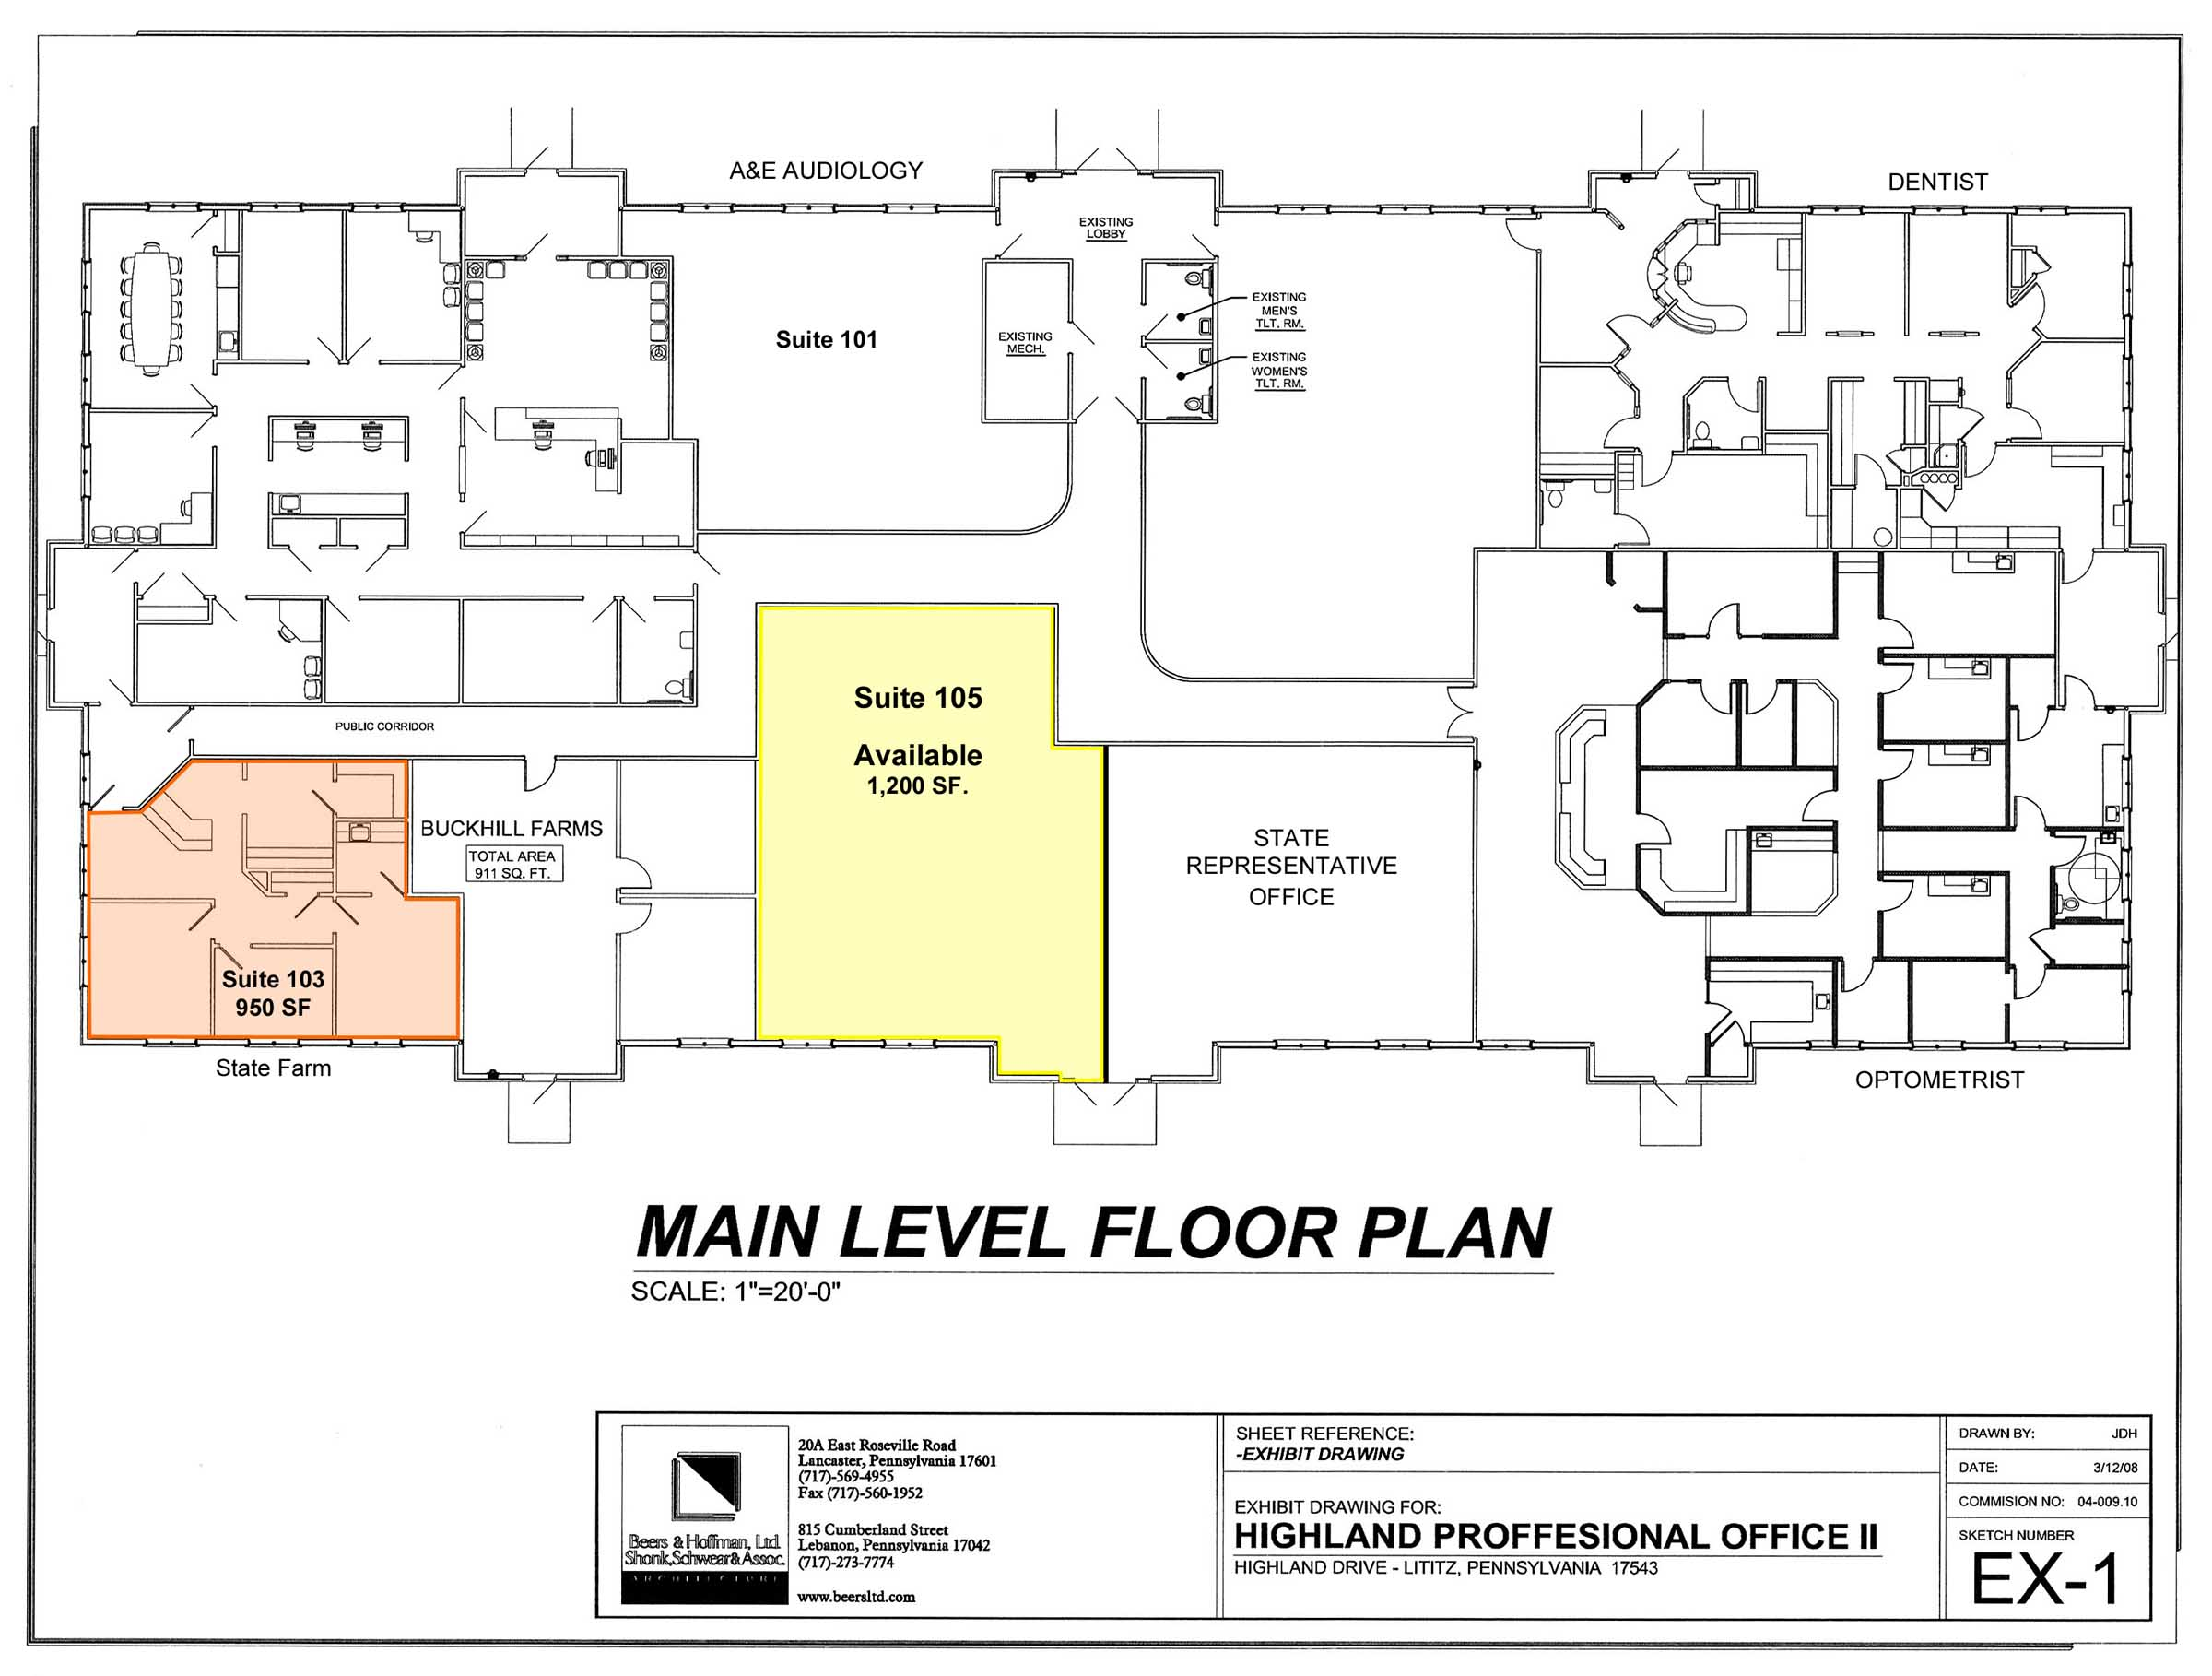 Highlands professional offices us commercial realty for Main level floor plans